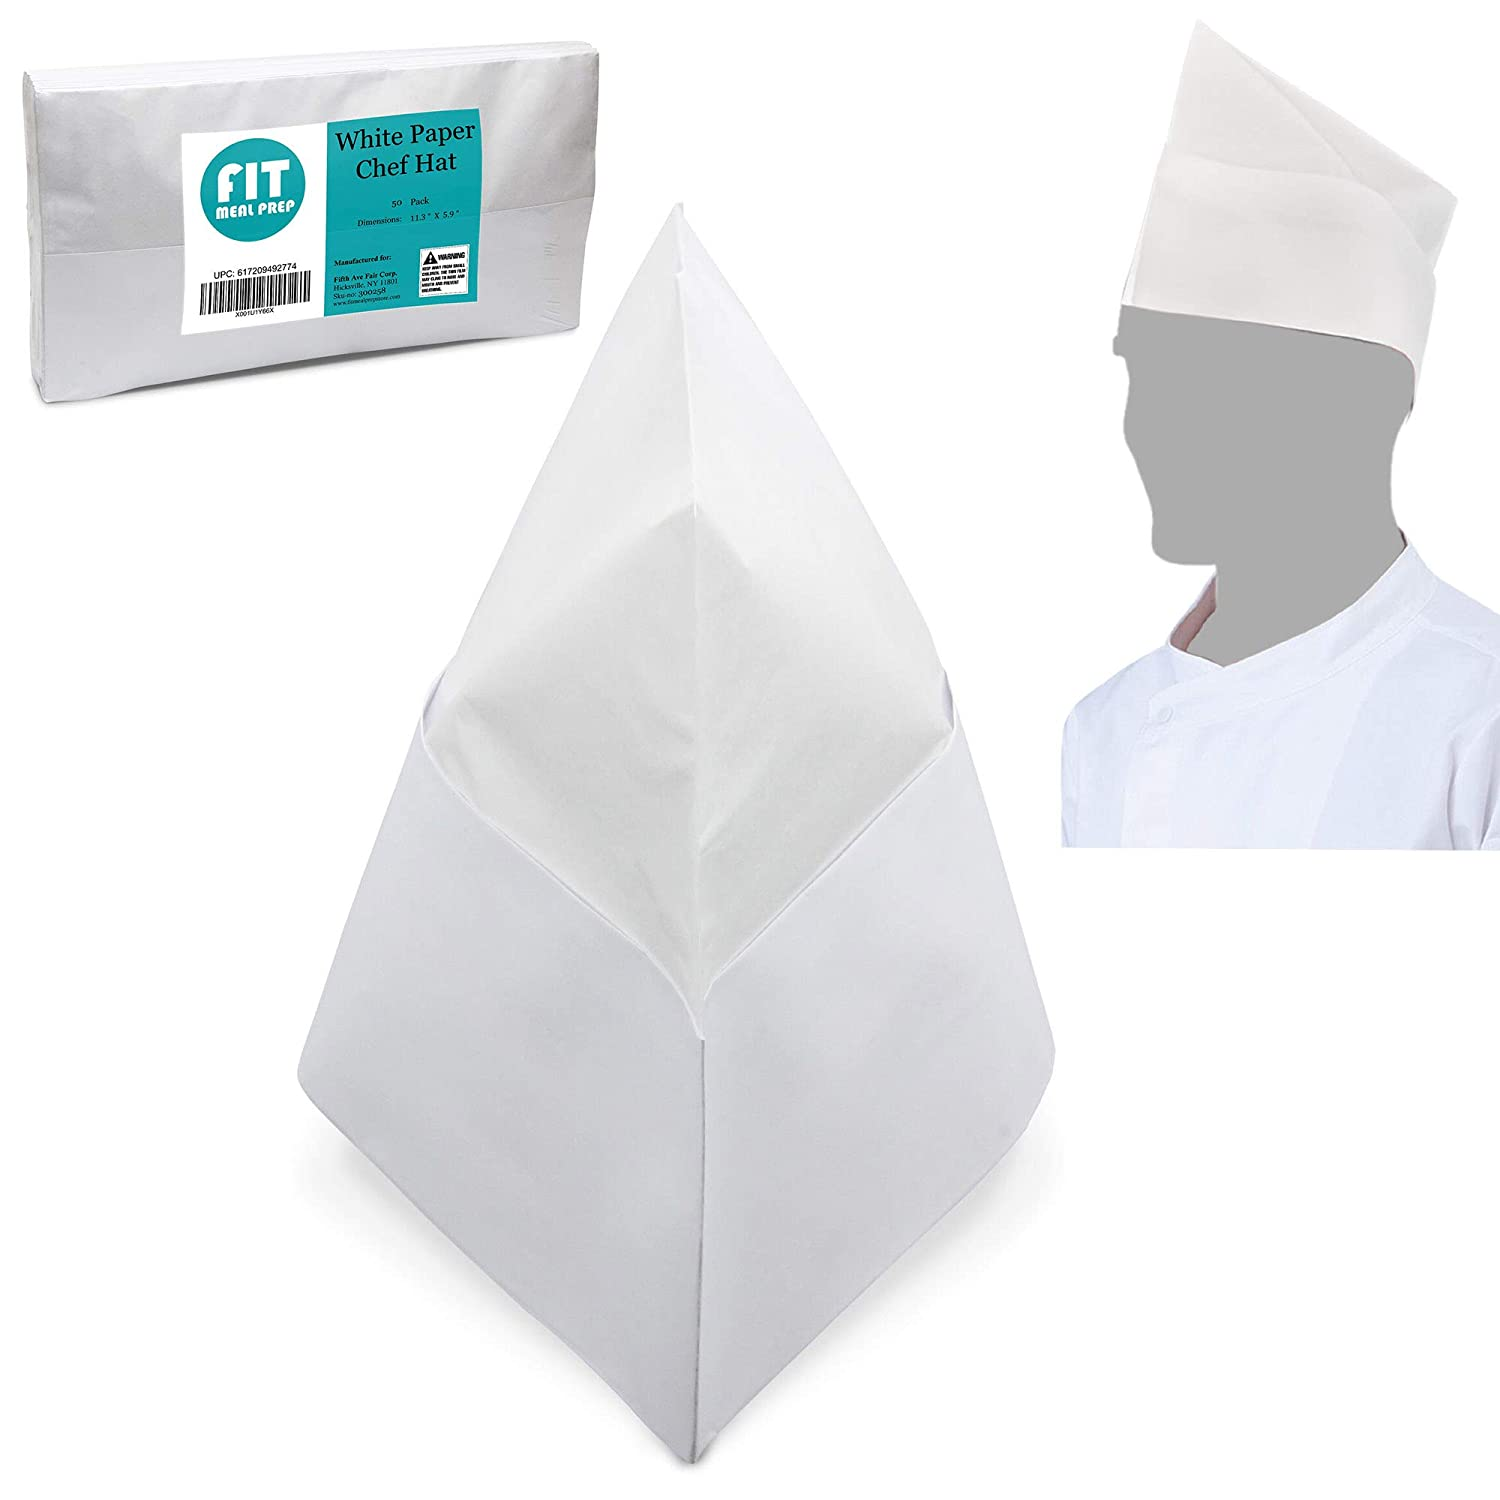 [50 Pack] White Paper Chef Hat - Disposable Soda Jerk Cap for Food Server, Retro Diner Theme, Baking and Party Favors, For Kids and Adults